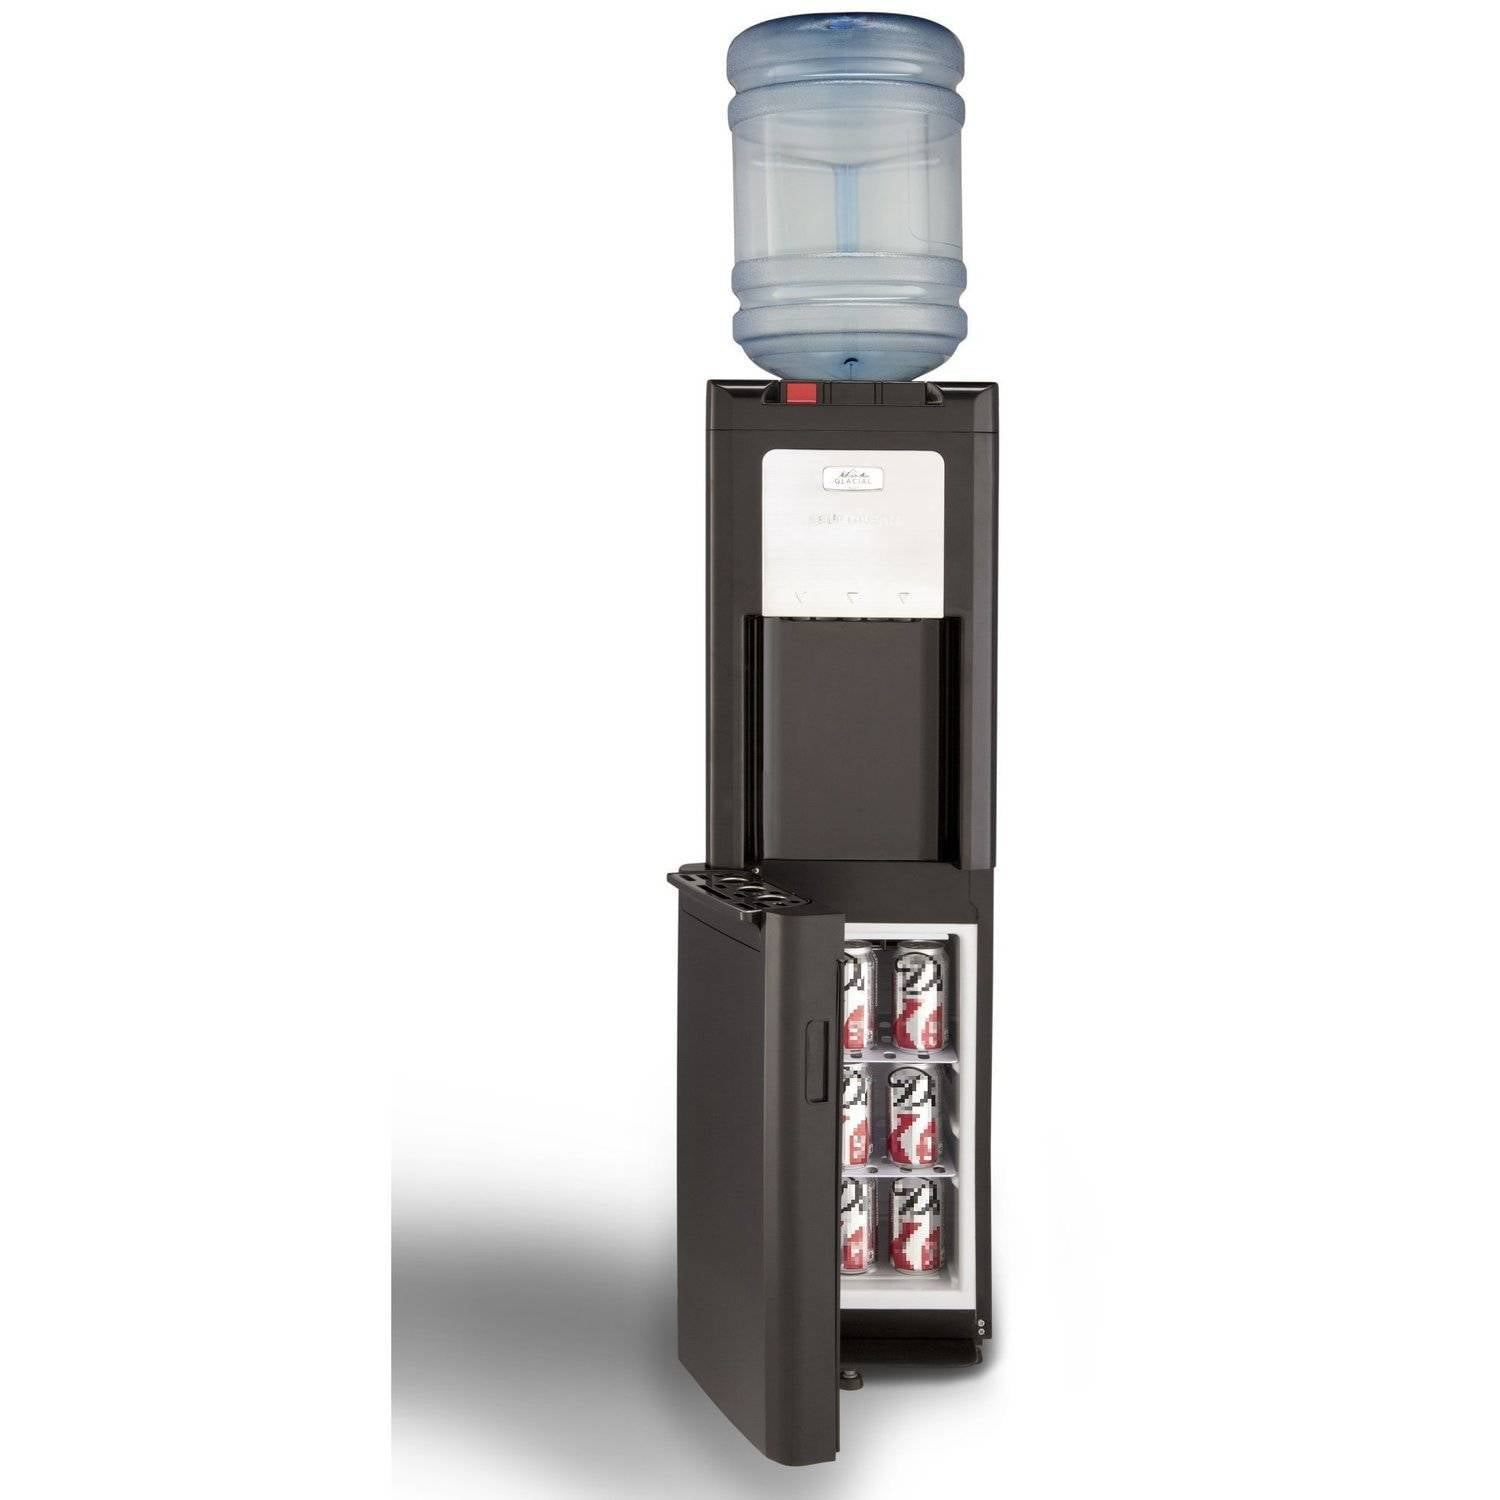 Refrigerated Water Dispenser Glacial Taller Black Top Load Water Dispenser Water Cooler With